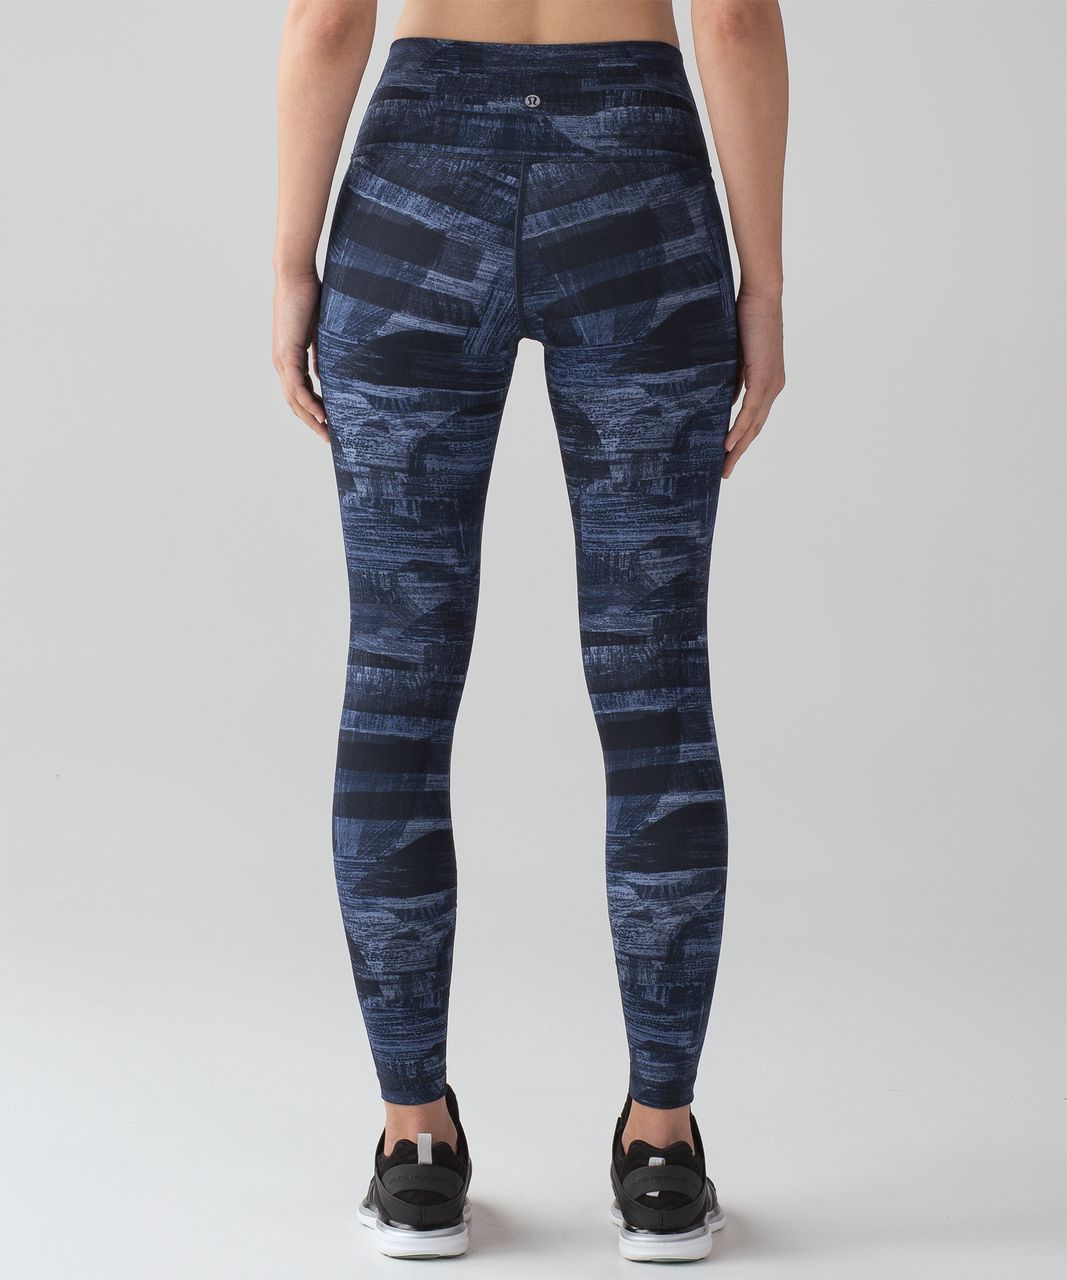 "Lululemon Wunder Under Hi-Rise Tight (Full-On Luxtreme 28"") - Transition Multi Midnight Navy"